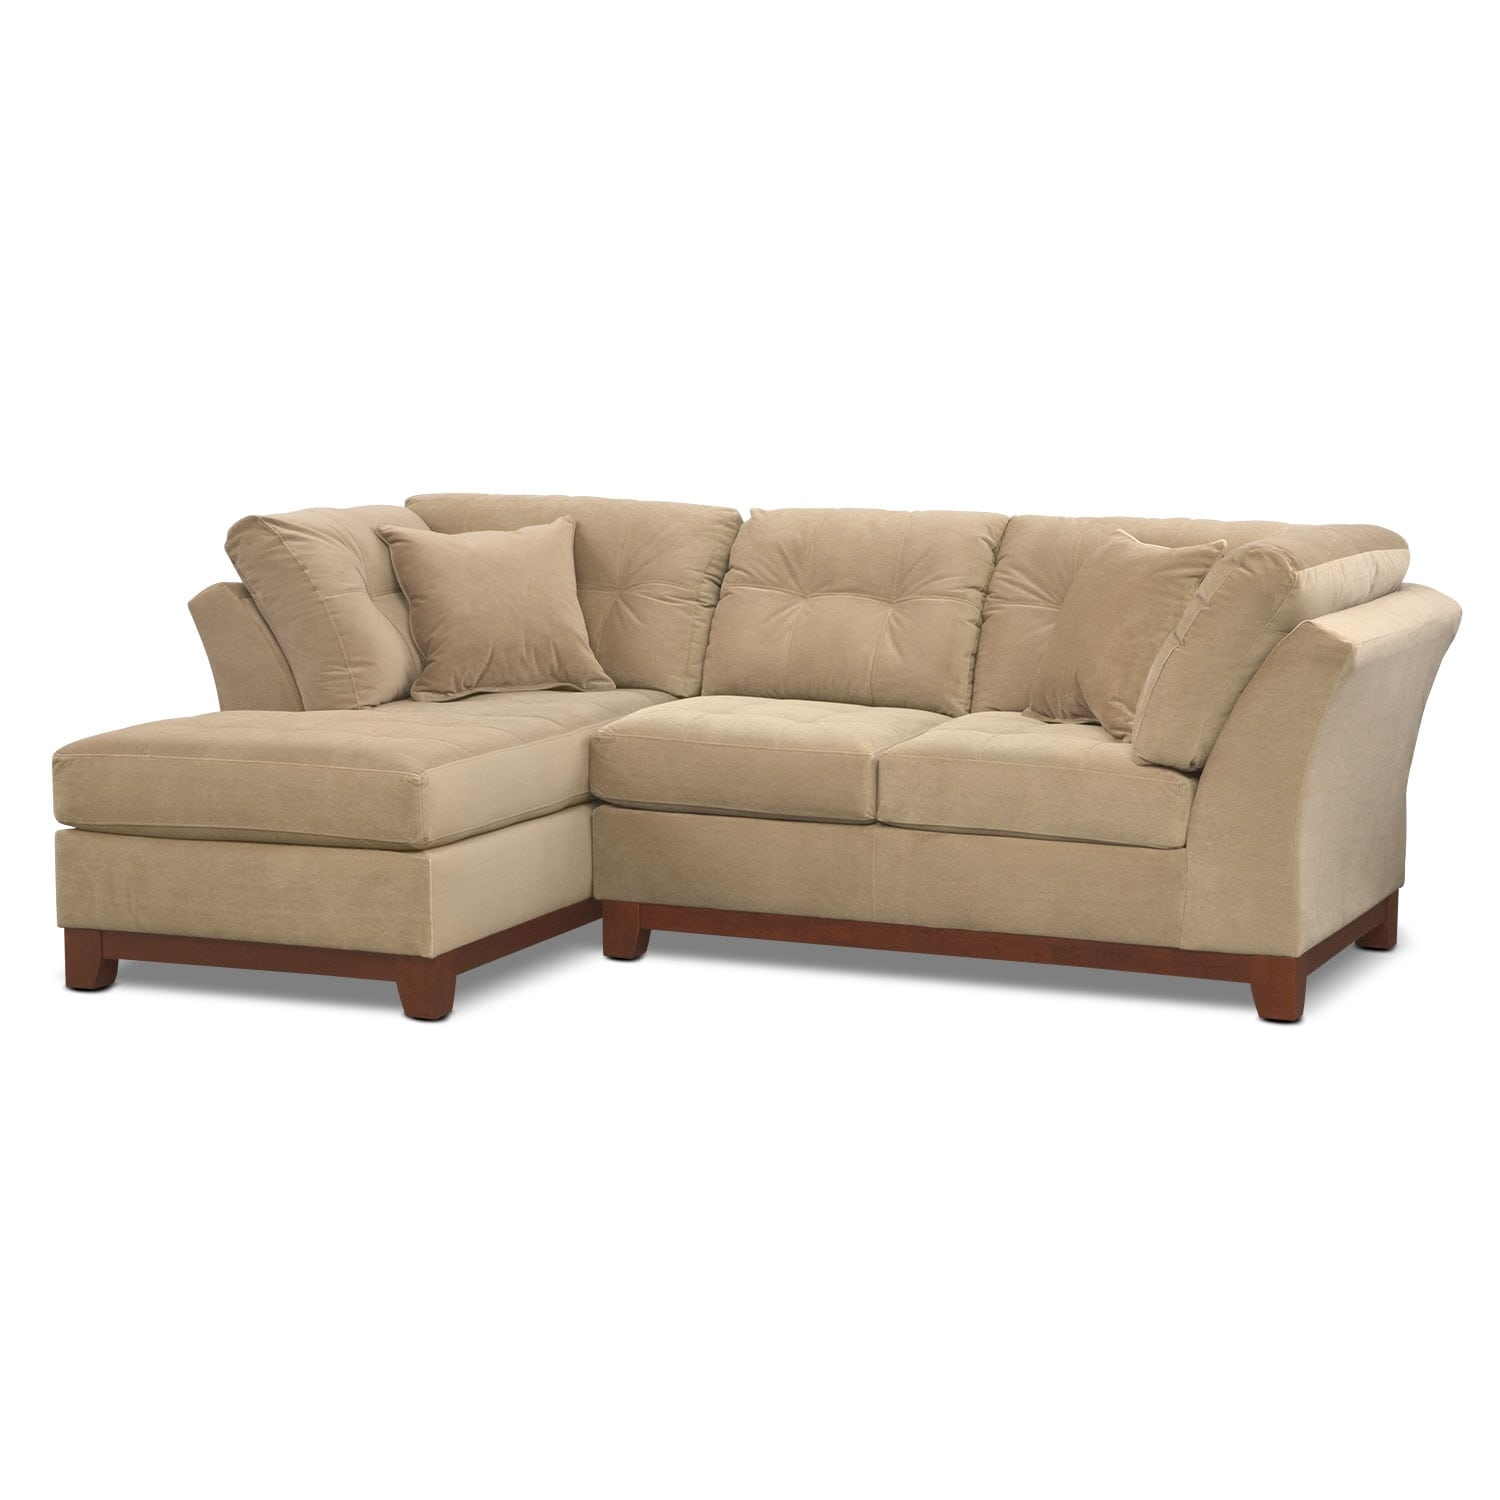 Living Room Furniture - Solace Cocoa II 2 Pc. Sectional (Alternate)